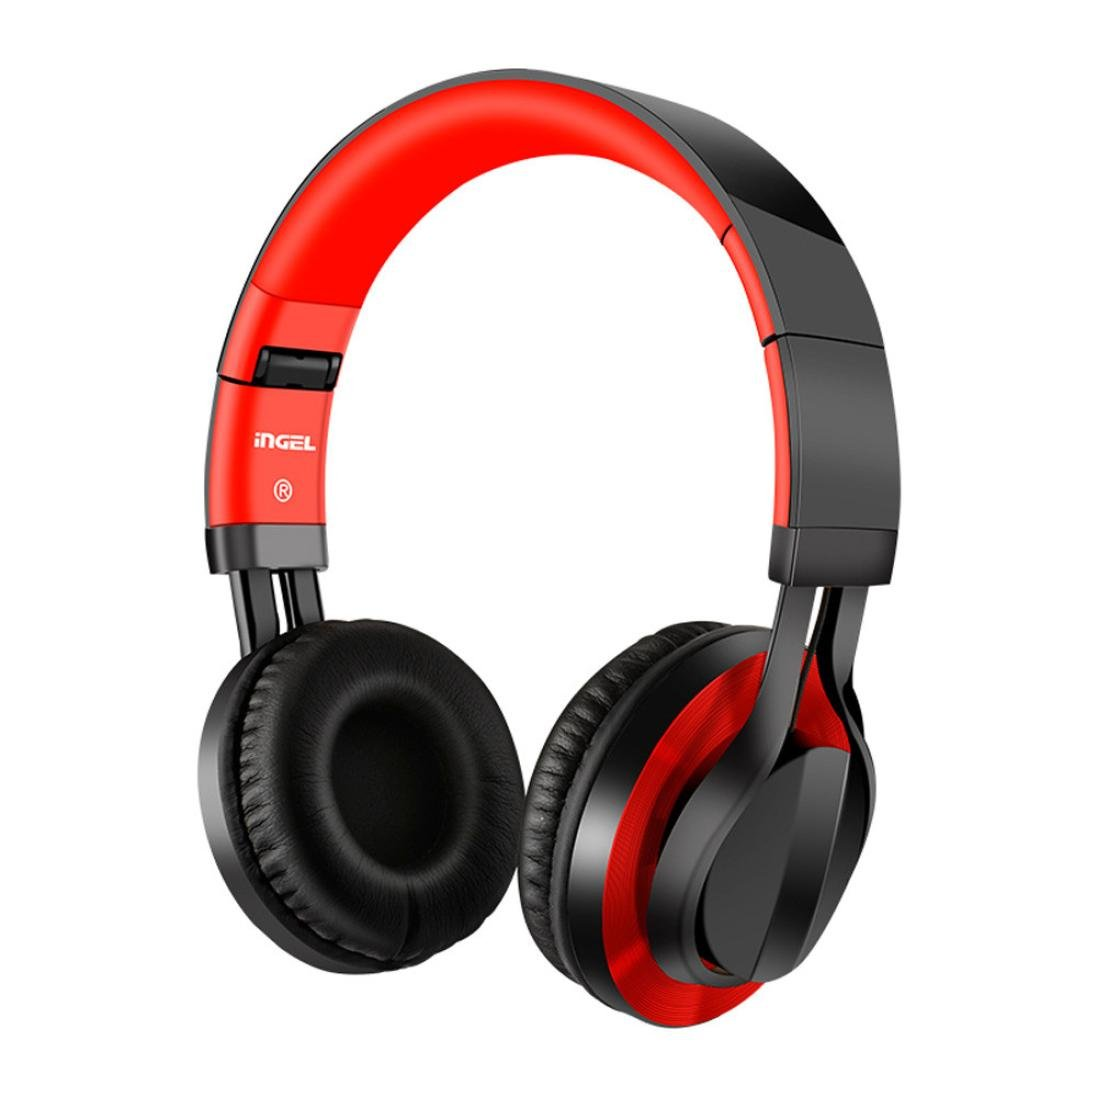 Sonmer Foldable Over Ear Stereo Wired Headphone With Soft Earmuffs (Black)